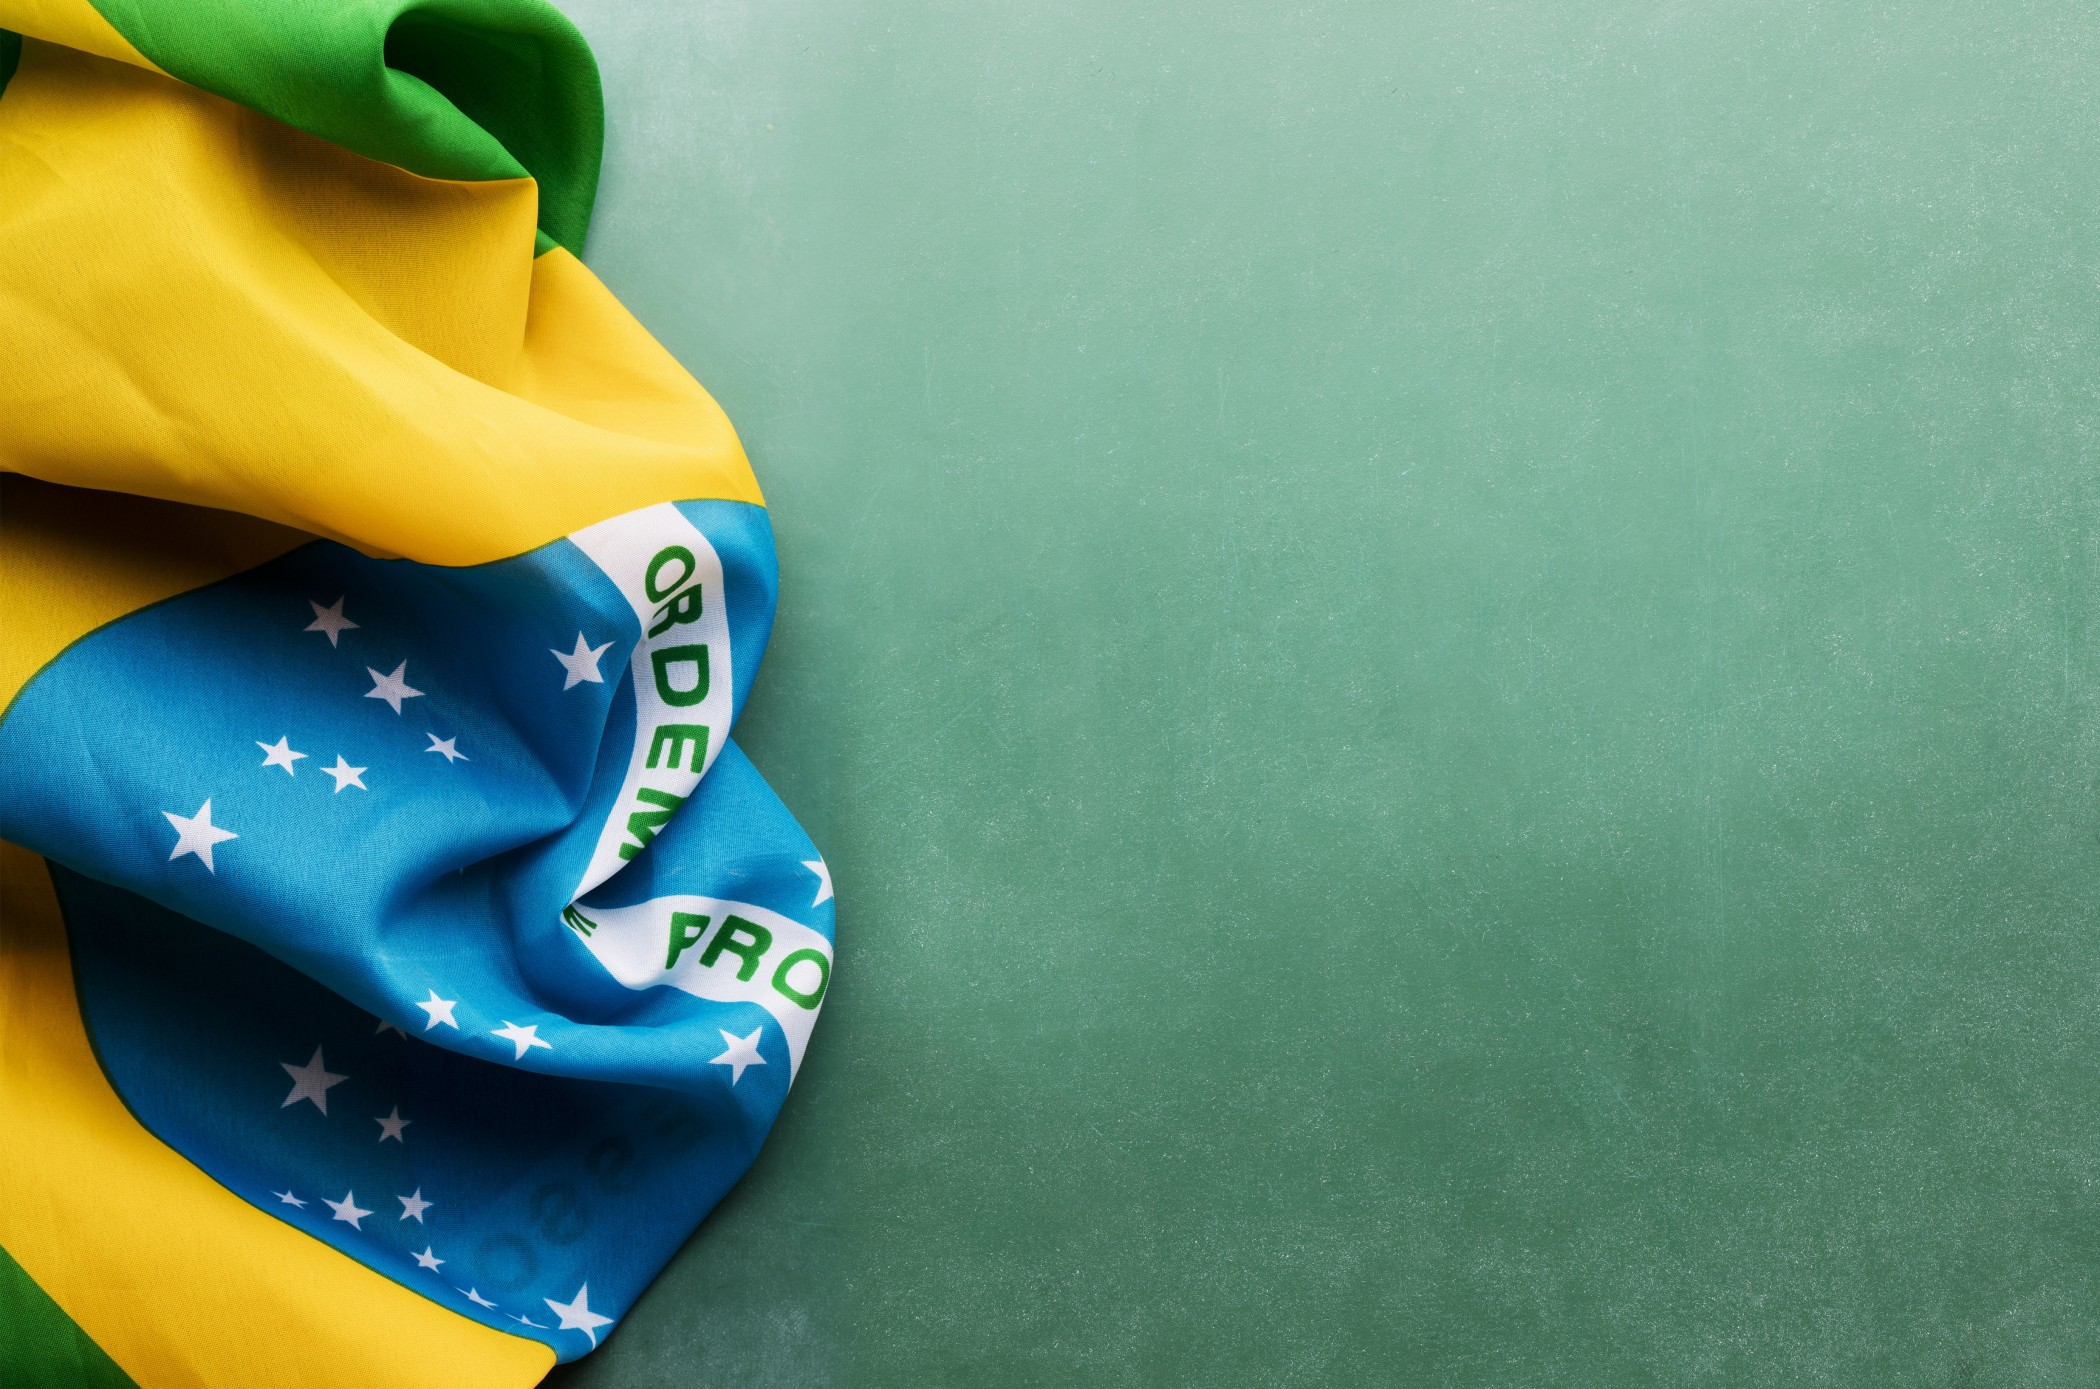 A Brazil flag is laying on a green chalkboard background